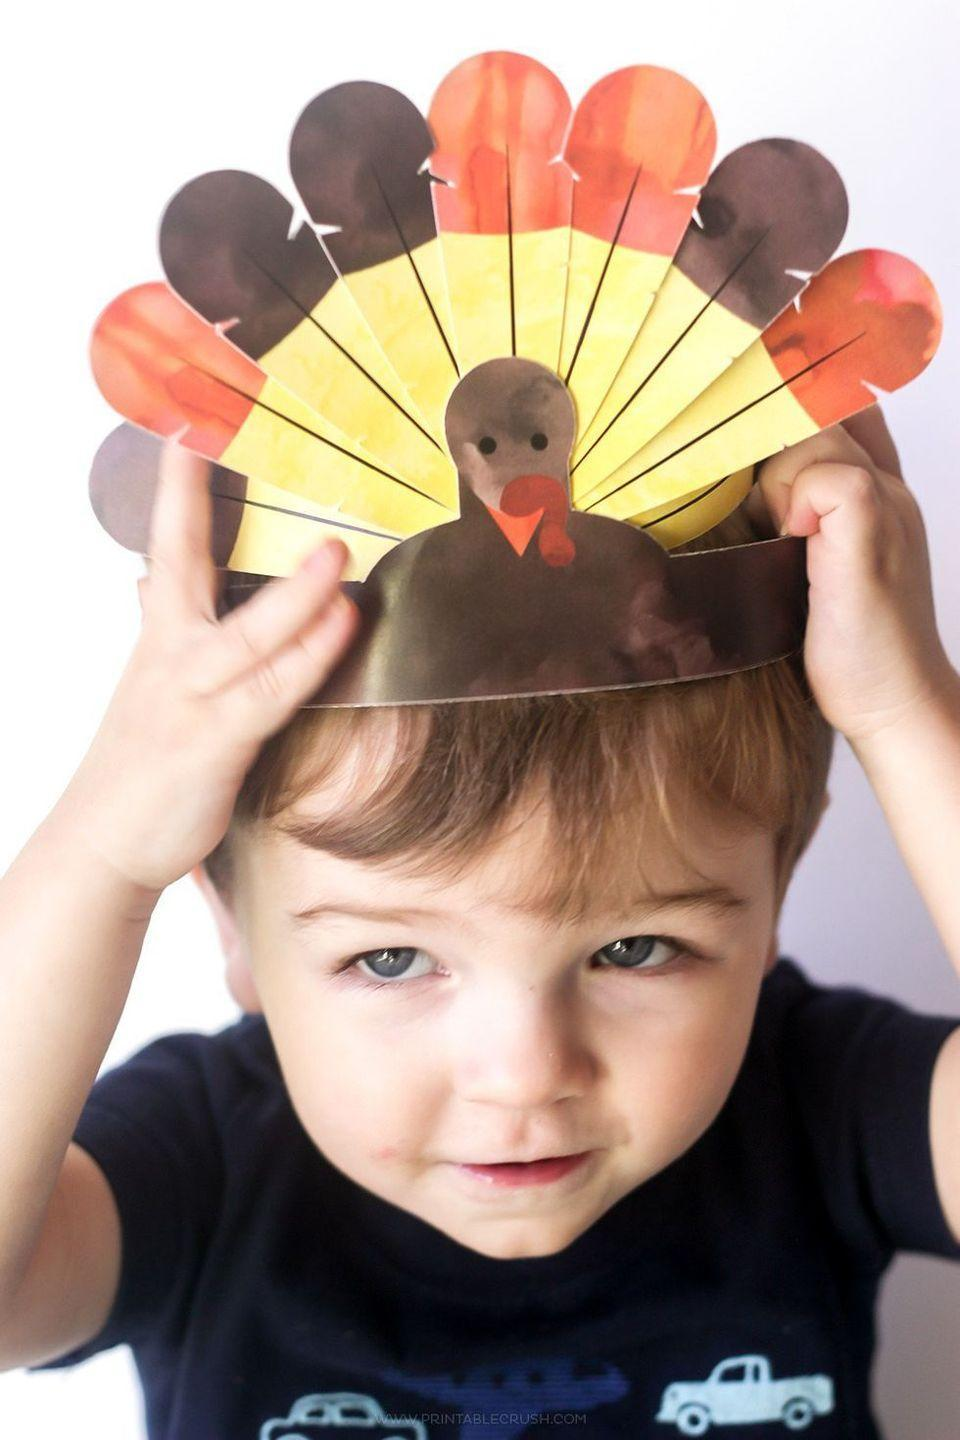 """<p>There are two wonderful things to know about these turkey crowns: For starters, they're offered as a free printable, and they come with easy-to-follow instructions. But the best part of all is that your kids can wear them all dinner long.</p><p><strong>Get the tutorial at <a href=""""https://printablecrush.com/free-printable-thanksgiving-turkey-crowns/"""" rel=""""nofollow noopener"""" target=""""_blank"""" data-ylk=""""slk:Printable Crush"""" class=""""link rapid-noclick-resp"""">Printable Crush</a>.</strong></p><p><strong><a class=""""link rapid-noclick-resp"""" href=""""https://www.amazon.com/Inches-Letter-Sheets-Smooth-216gsm/dp/B00RU6IGAS?tag=syn-yahoo-20&ascsubtag=%5Bartid%7C10050.g.28638625%5Bsrc%7Cyahoo-us"""" rel=""""nofollow noopener"""" target=""""_blank"""" data-ylk=""""slk:SHOP CARD STOCK"""">SHOP CARD STOCK</a></strong></p>"""